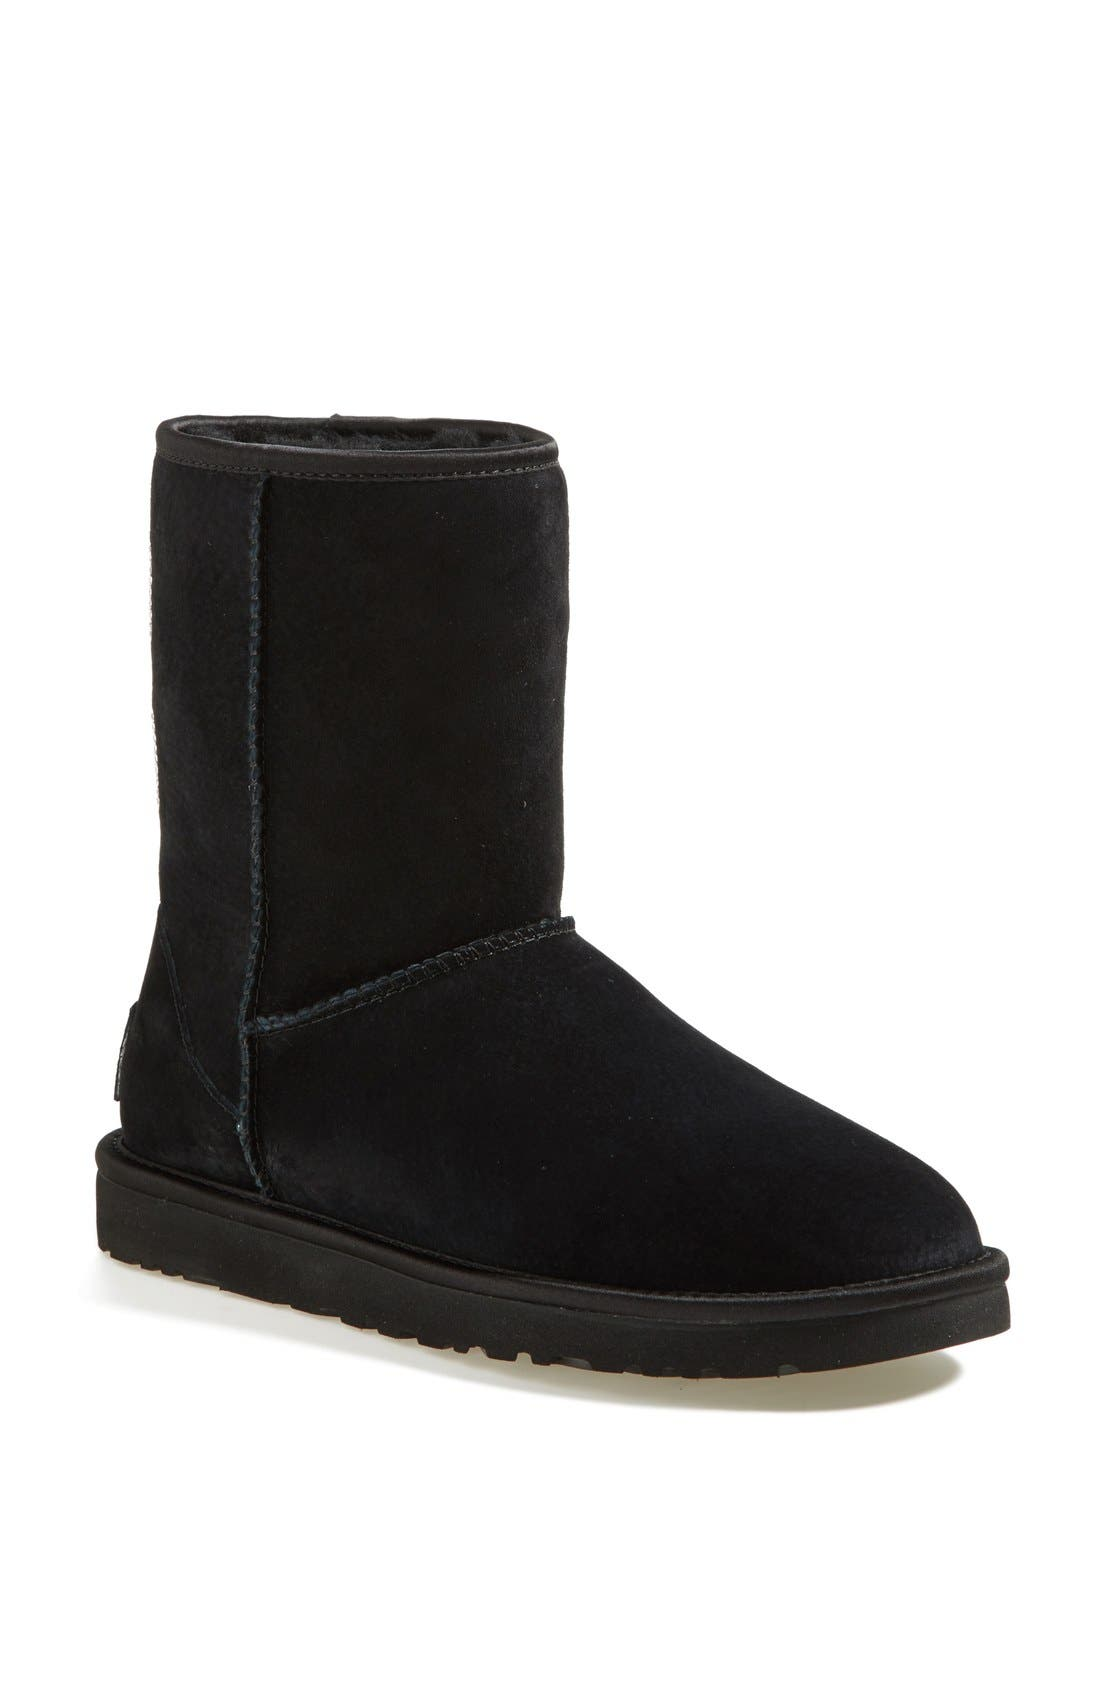 Main Image - UGG® Australia 'Classic Short - Crystal Bow' Water Resistant Suede Boot (Women)